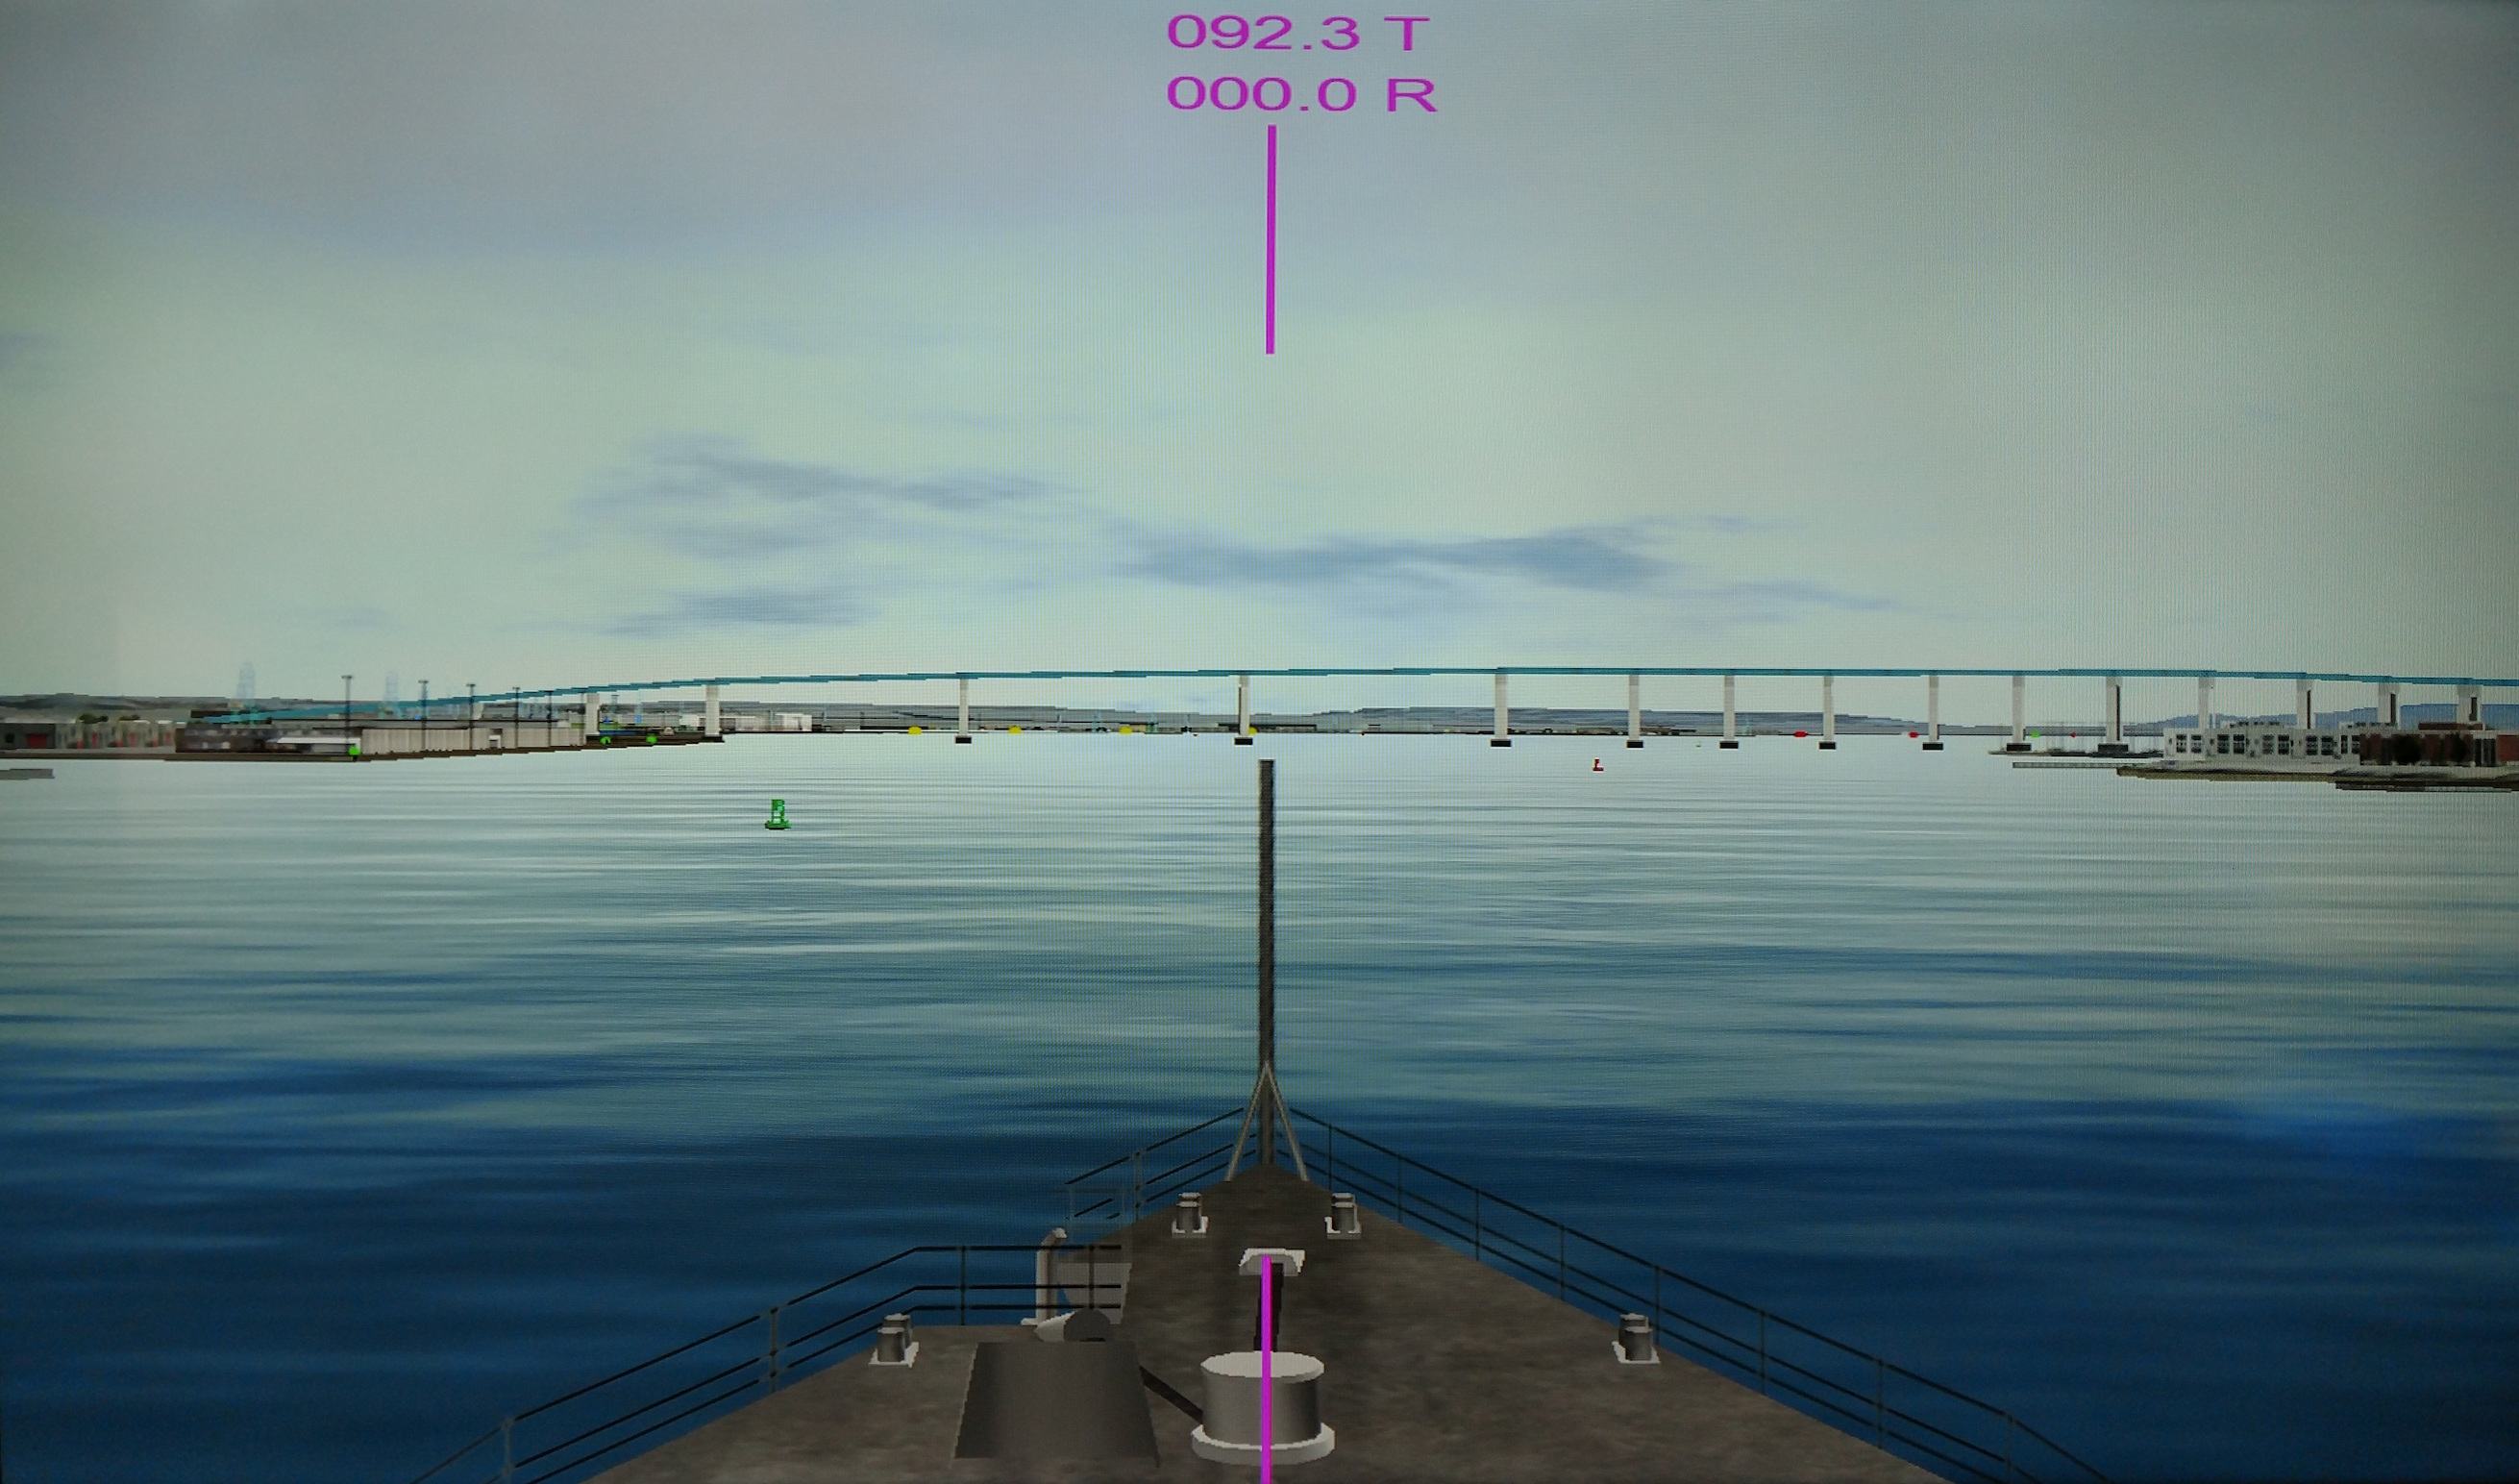 A view of the Port of San Diego as shown in a virtual reality system.